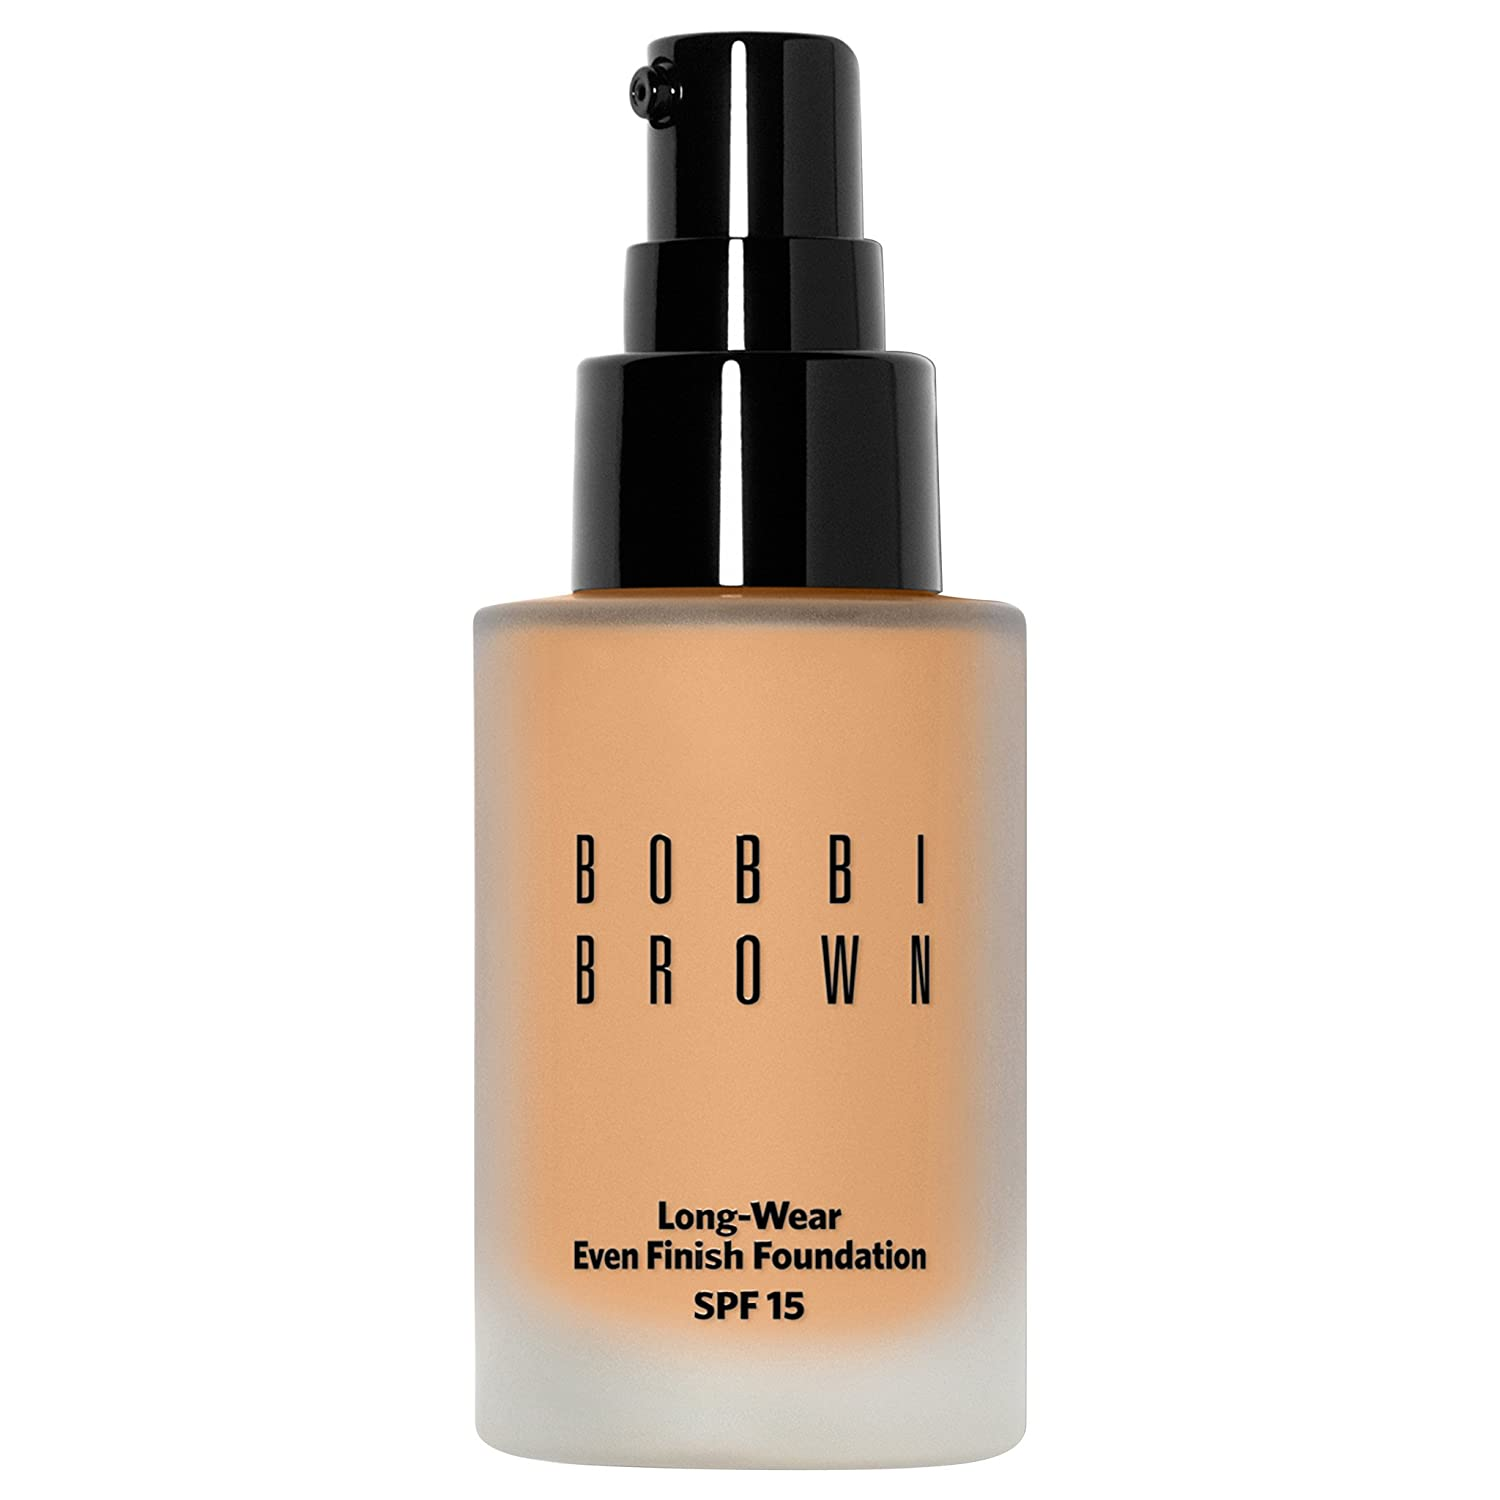 Bobbi Brown Long-Wear Even Finish Foundation